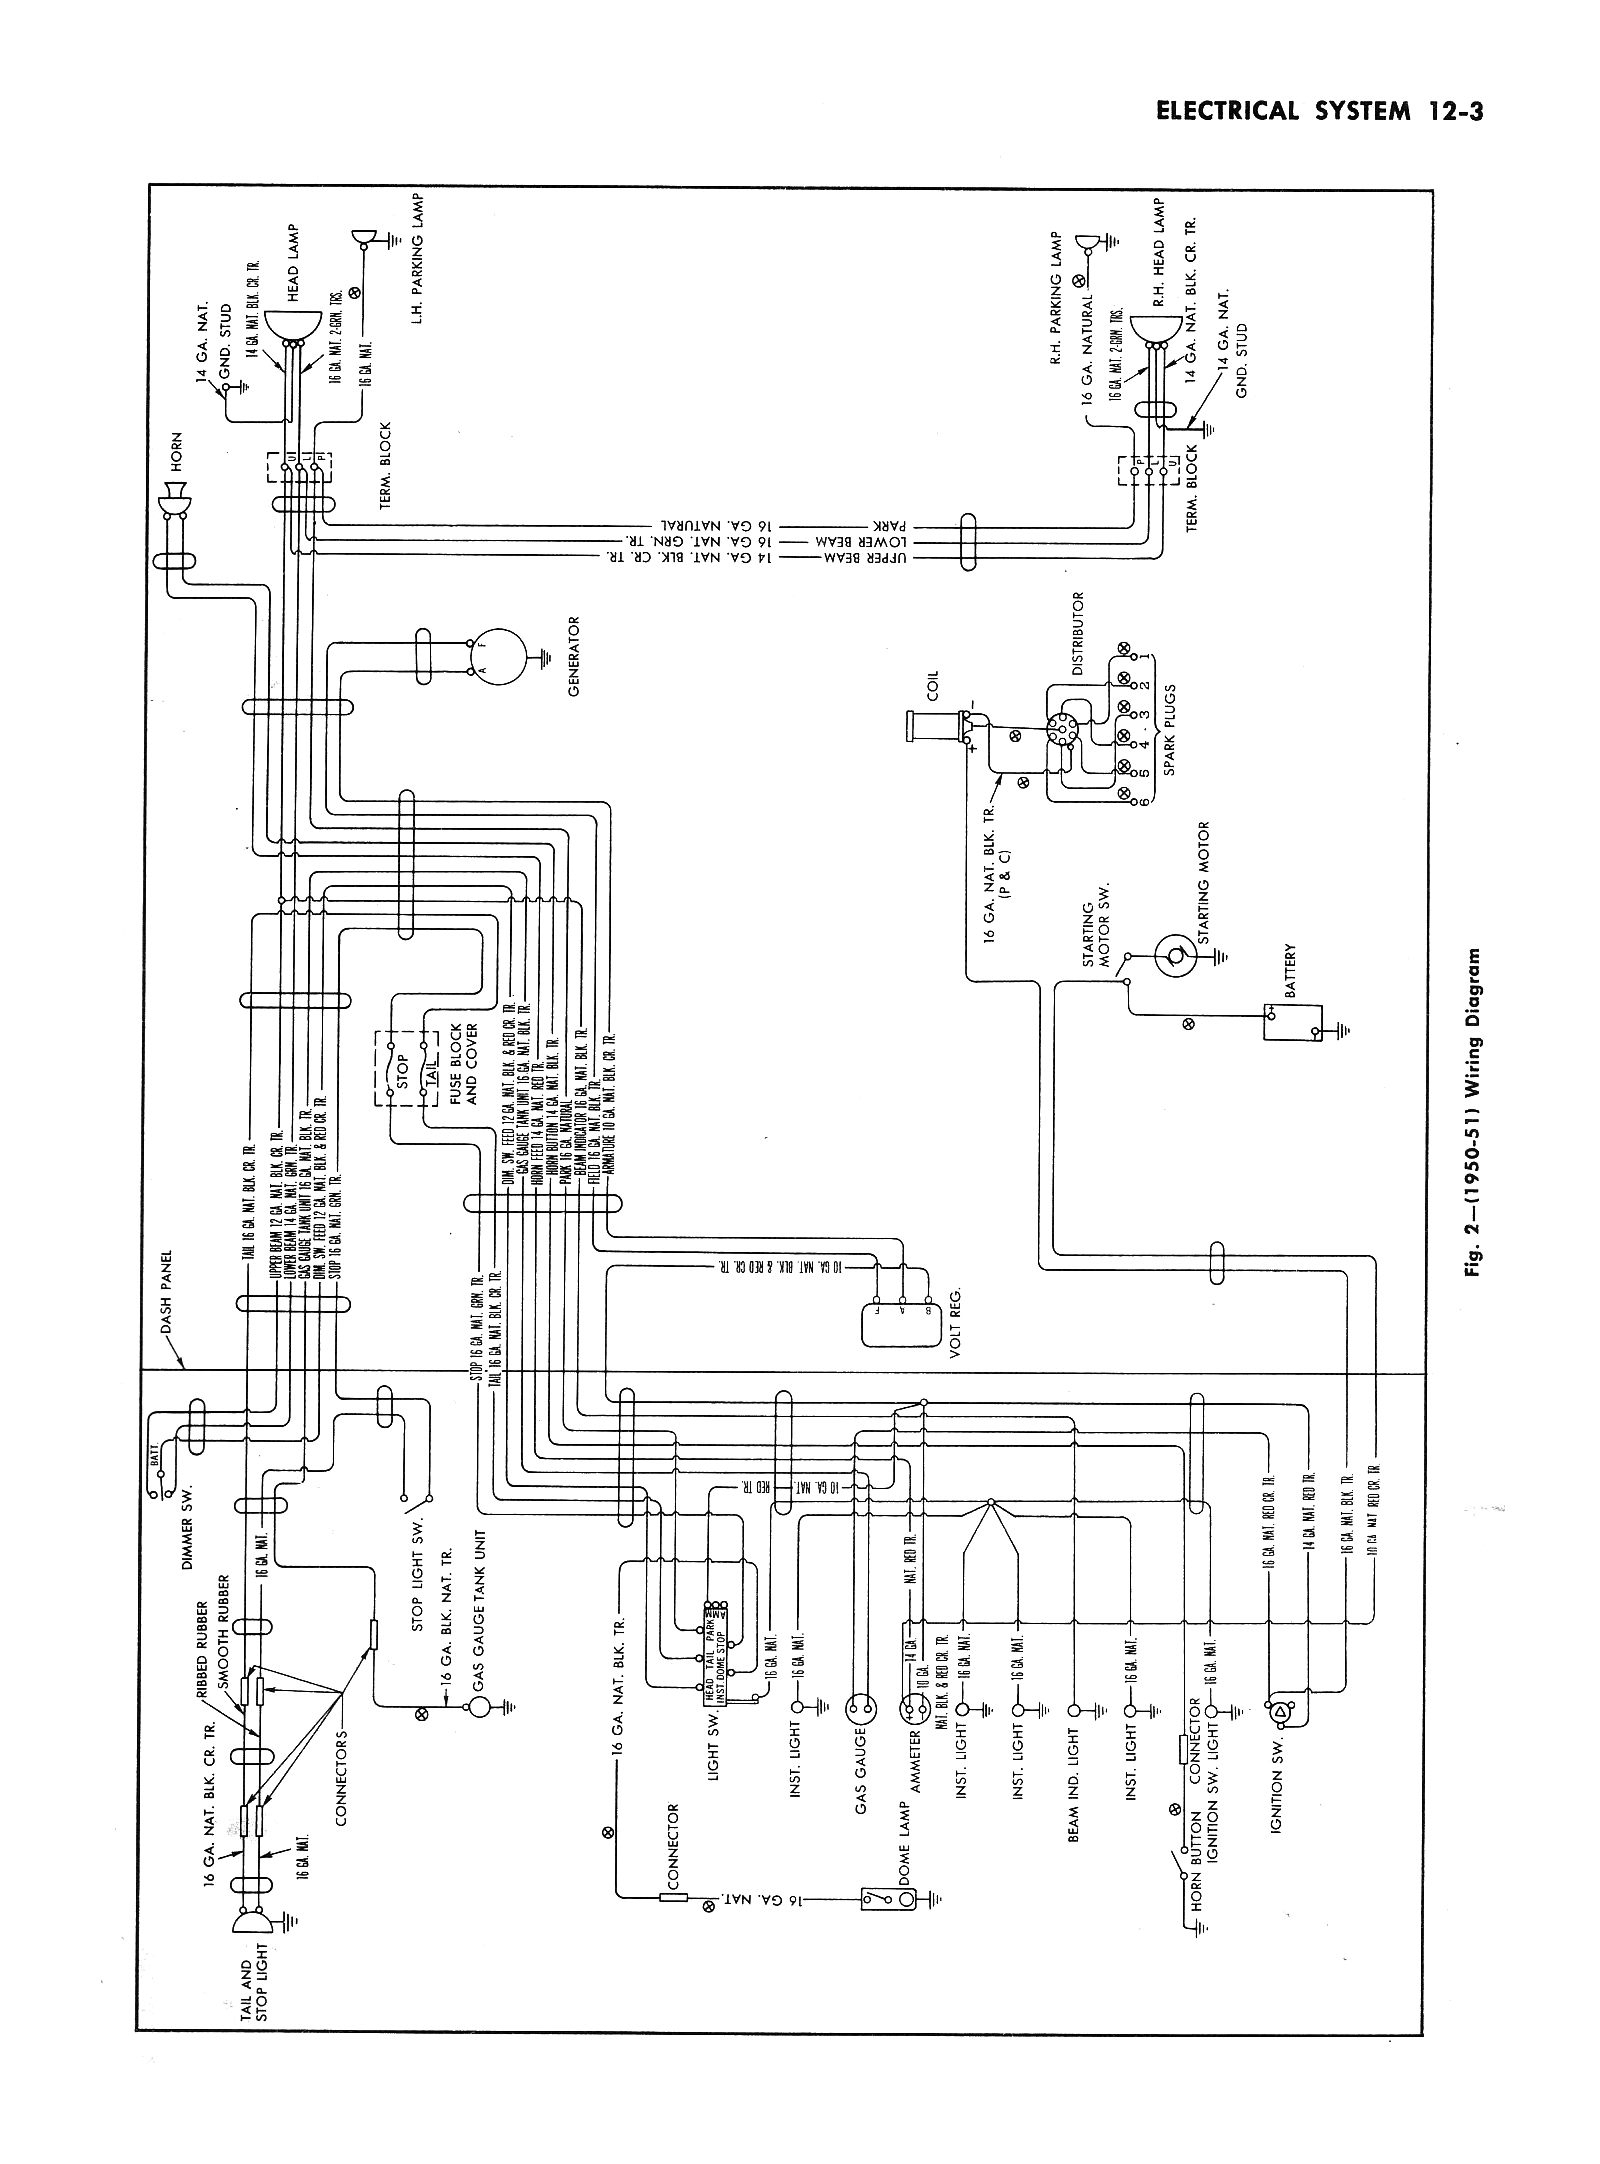 1952 Ford Wiring Diagram - Wiring Diagram Data Oreo - Chevy Alternator Wiring Diagram